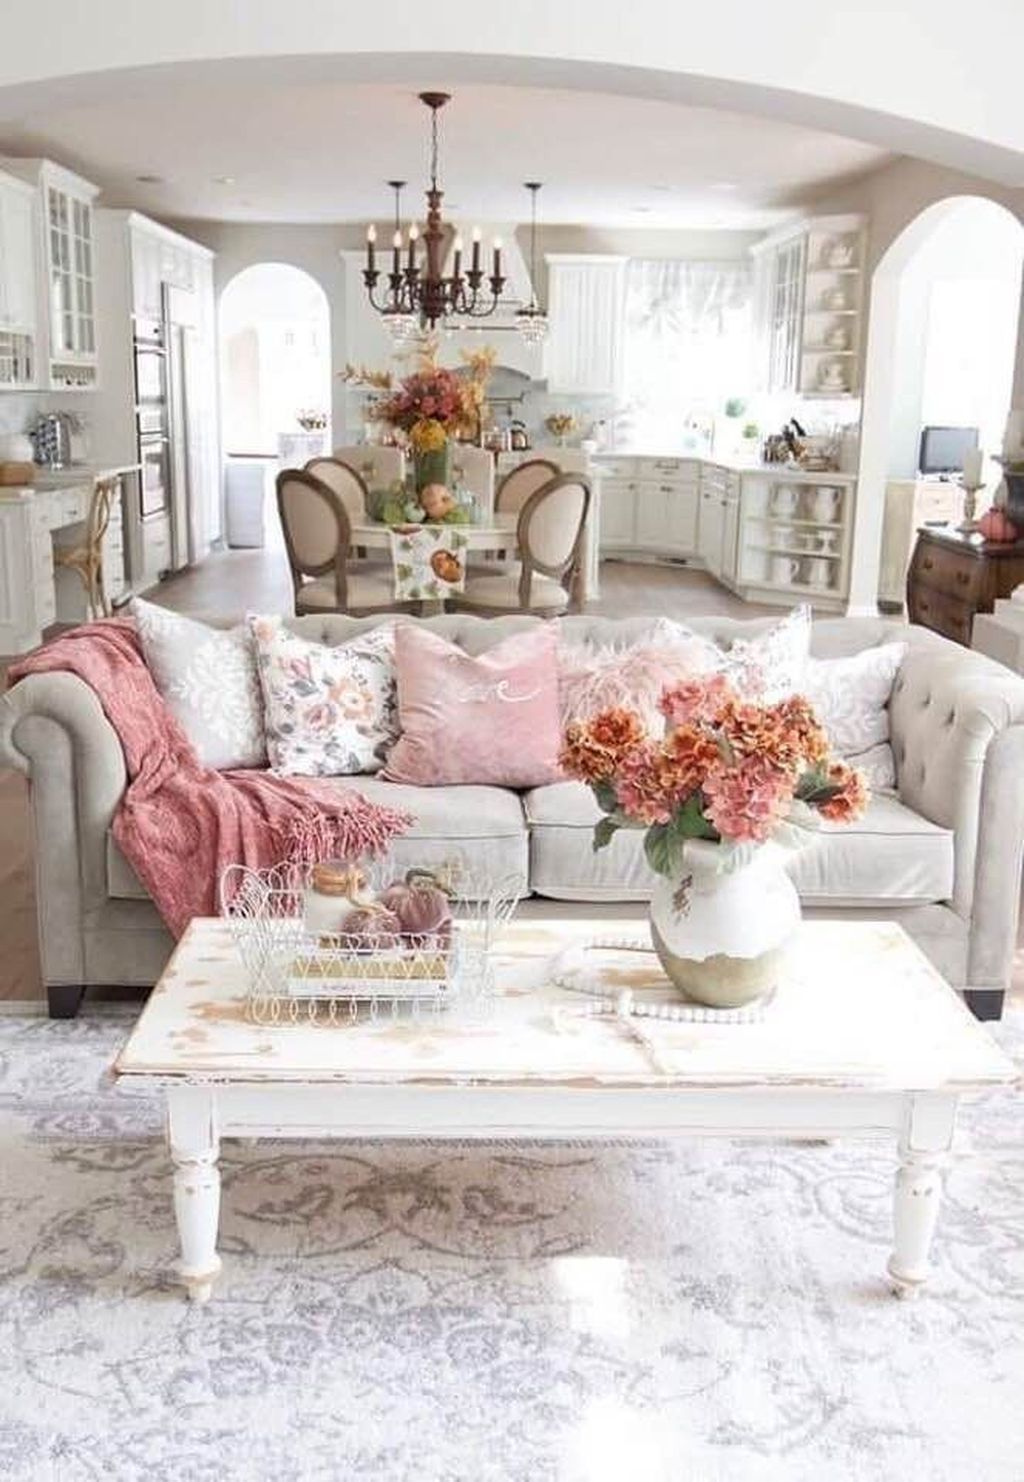 Country Cottage Living Room Decorating Ideas Internal Home Design In 2020 French Country Living Room French Country Decorating Living Room Country House Decor